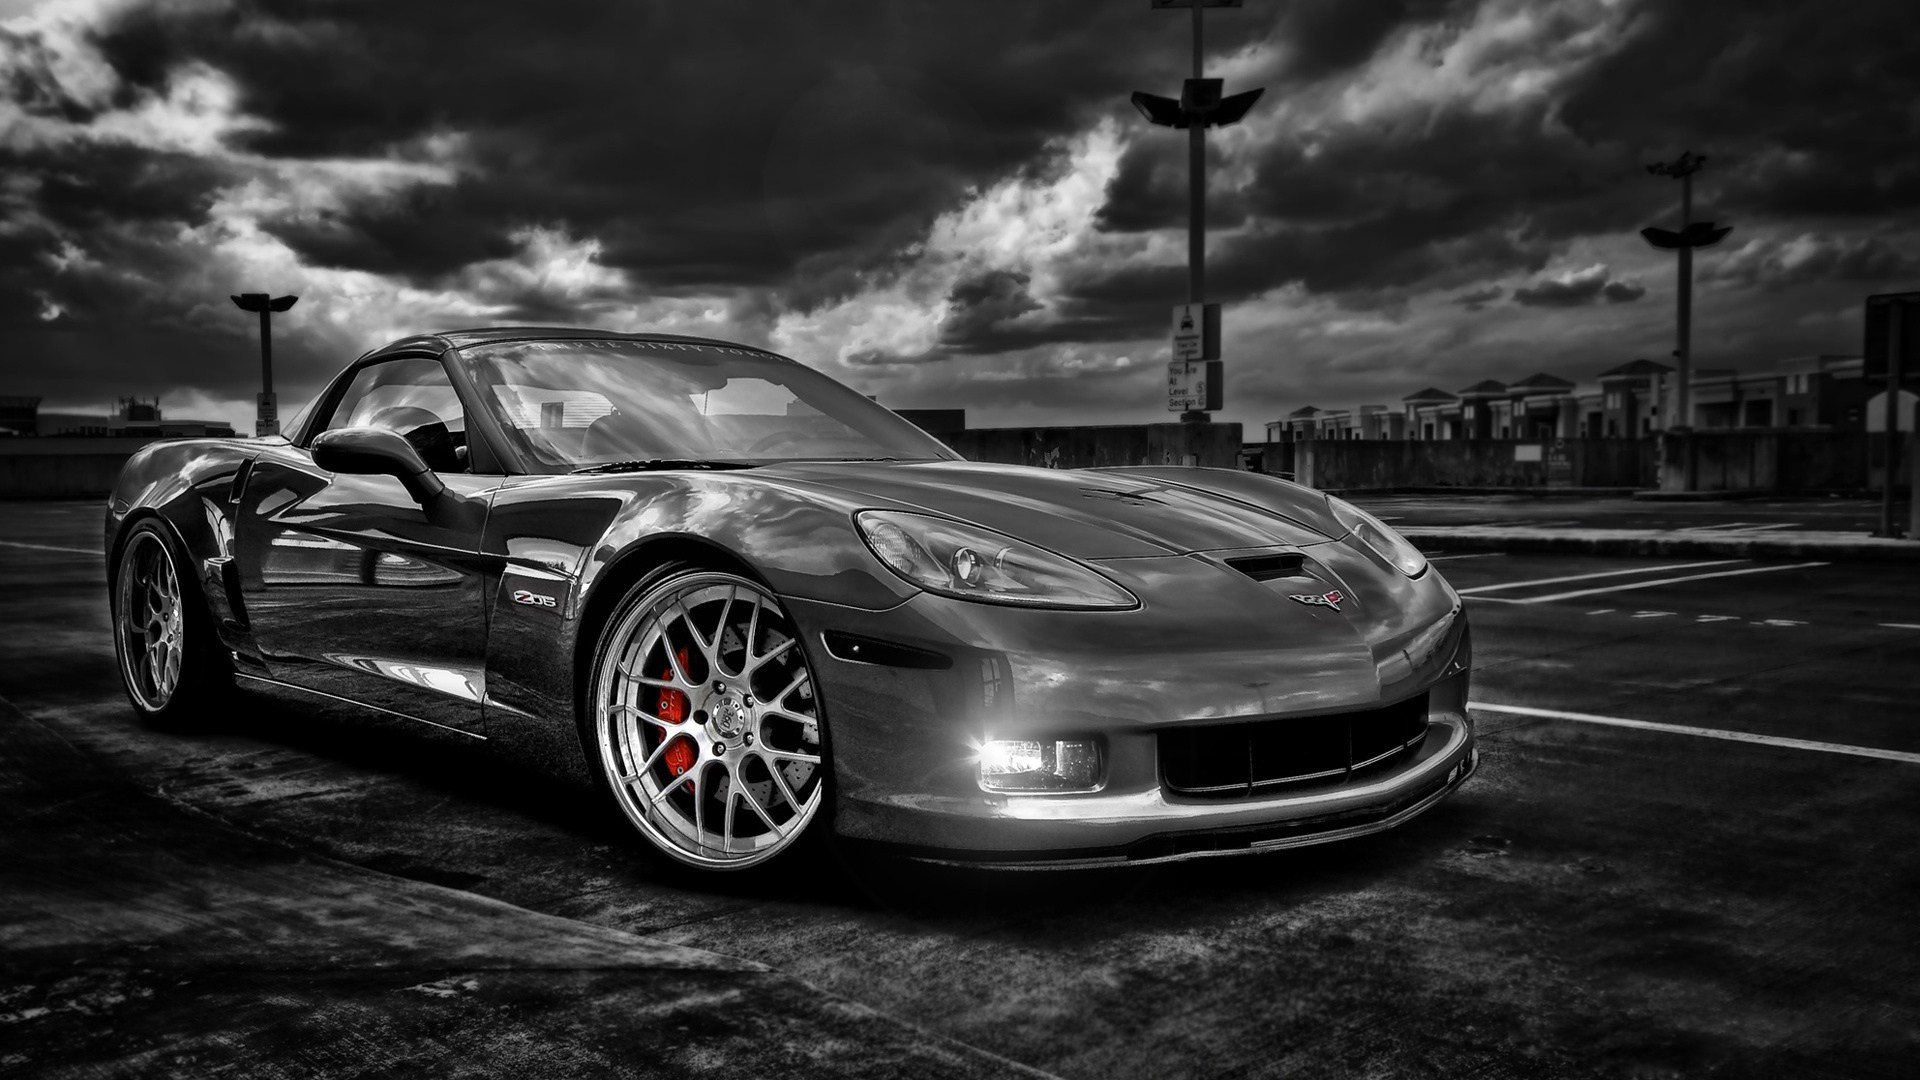 New Hd Car Wallpapers 1920X1080 Wallpapersafari On This Month